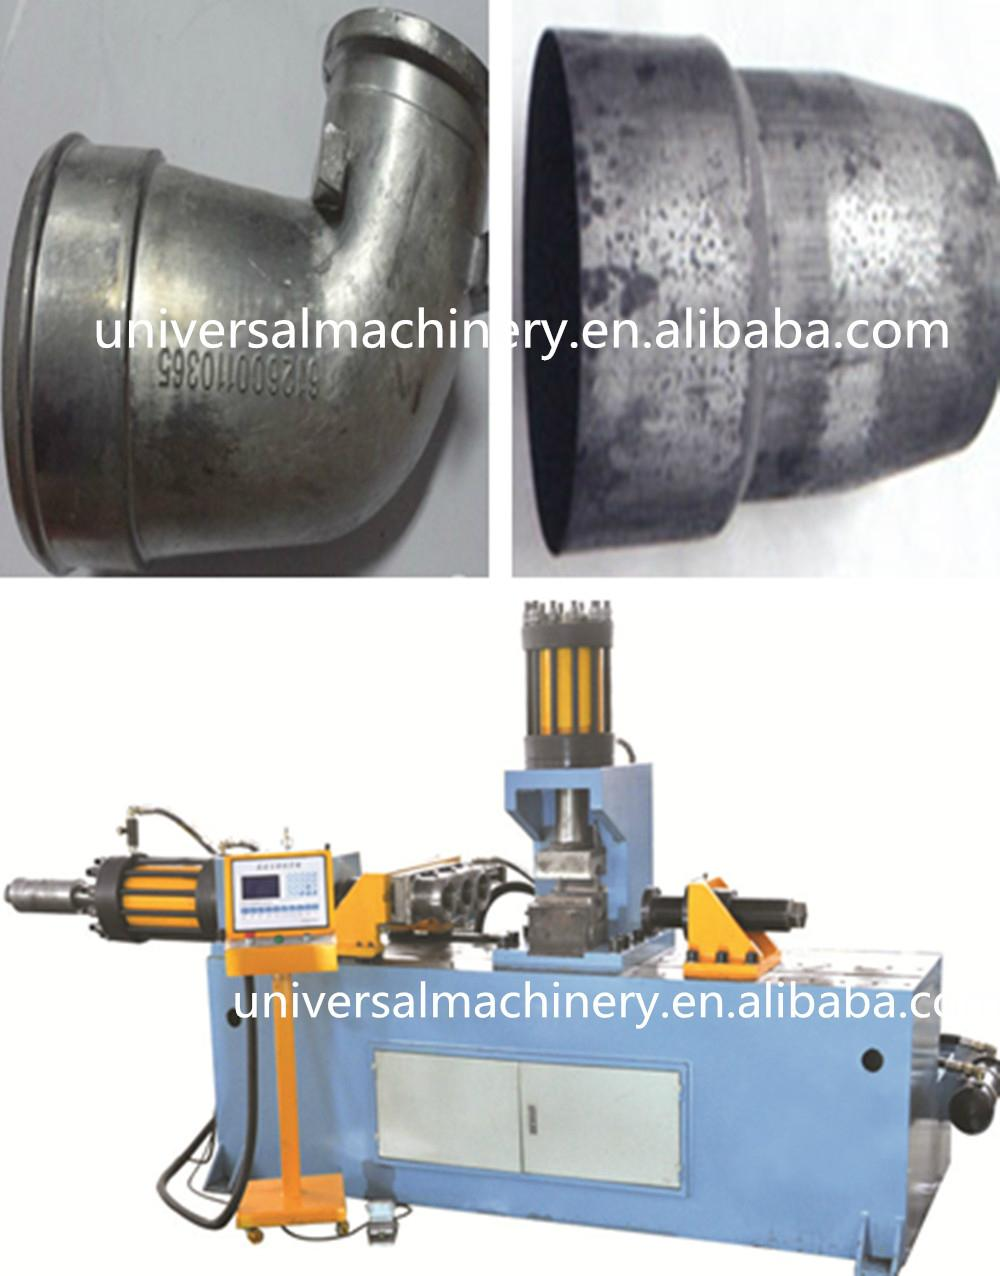 China Factory price Pipe Reducing Machine for pipe reducing expanding flanging 1